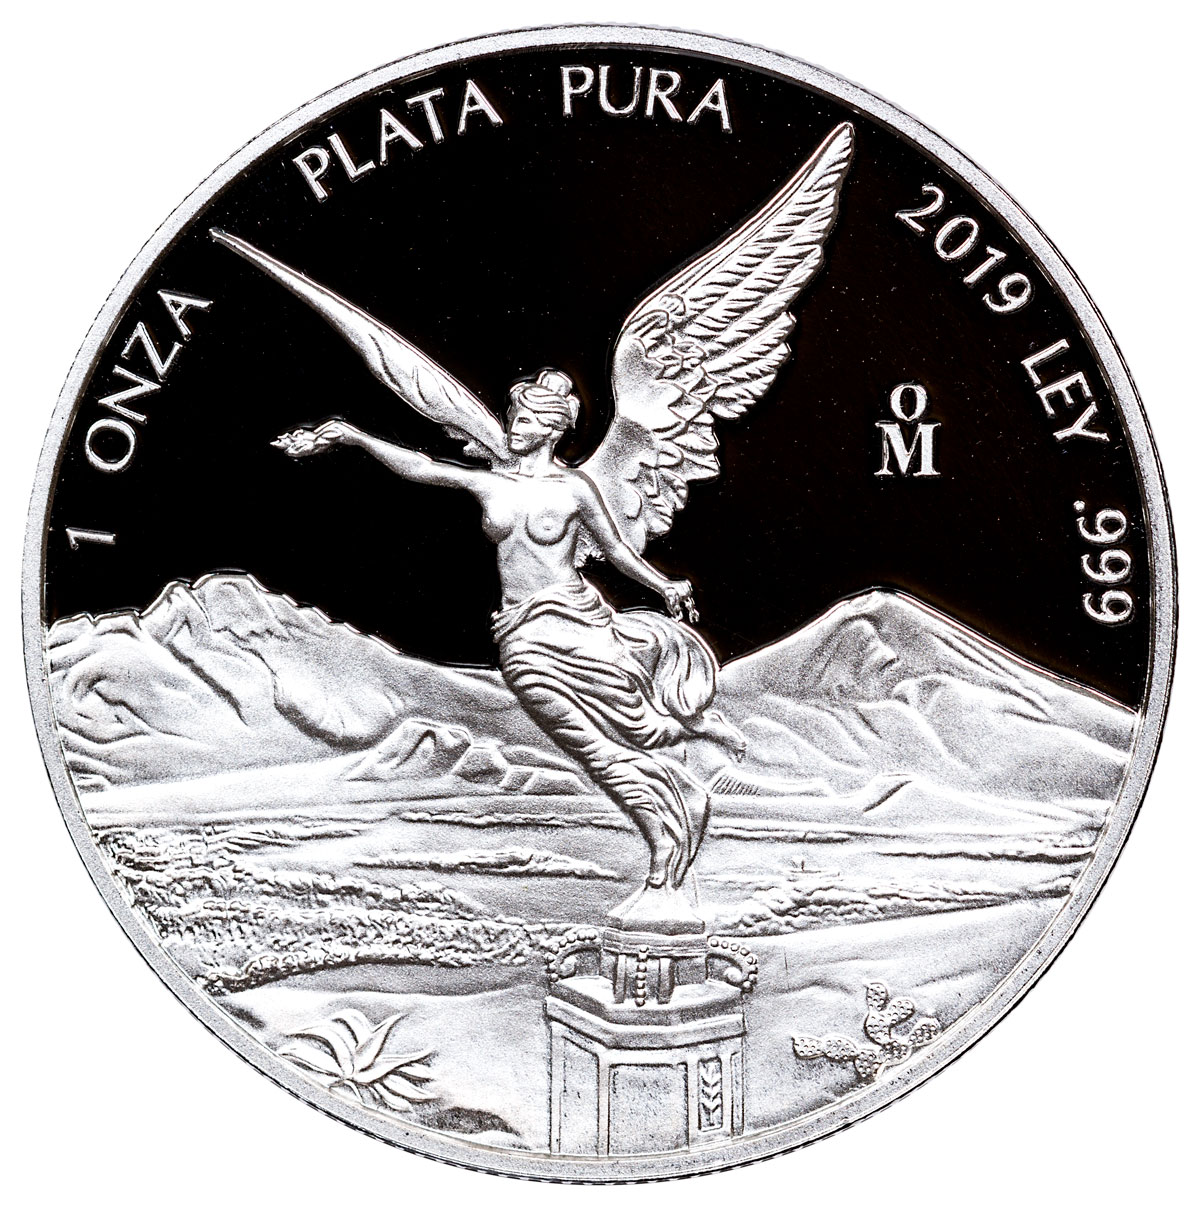 2019-Mo Mexico Silver Libertad Proof 1 Onza Coin GEM Proof